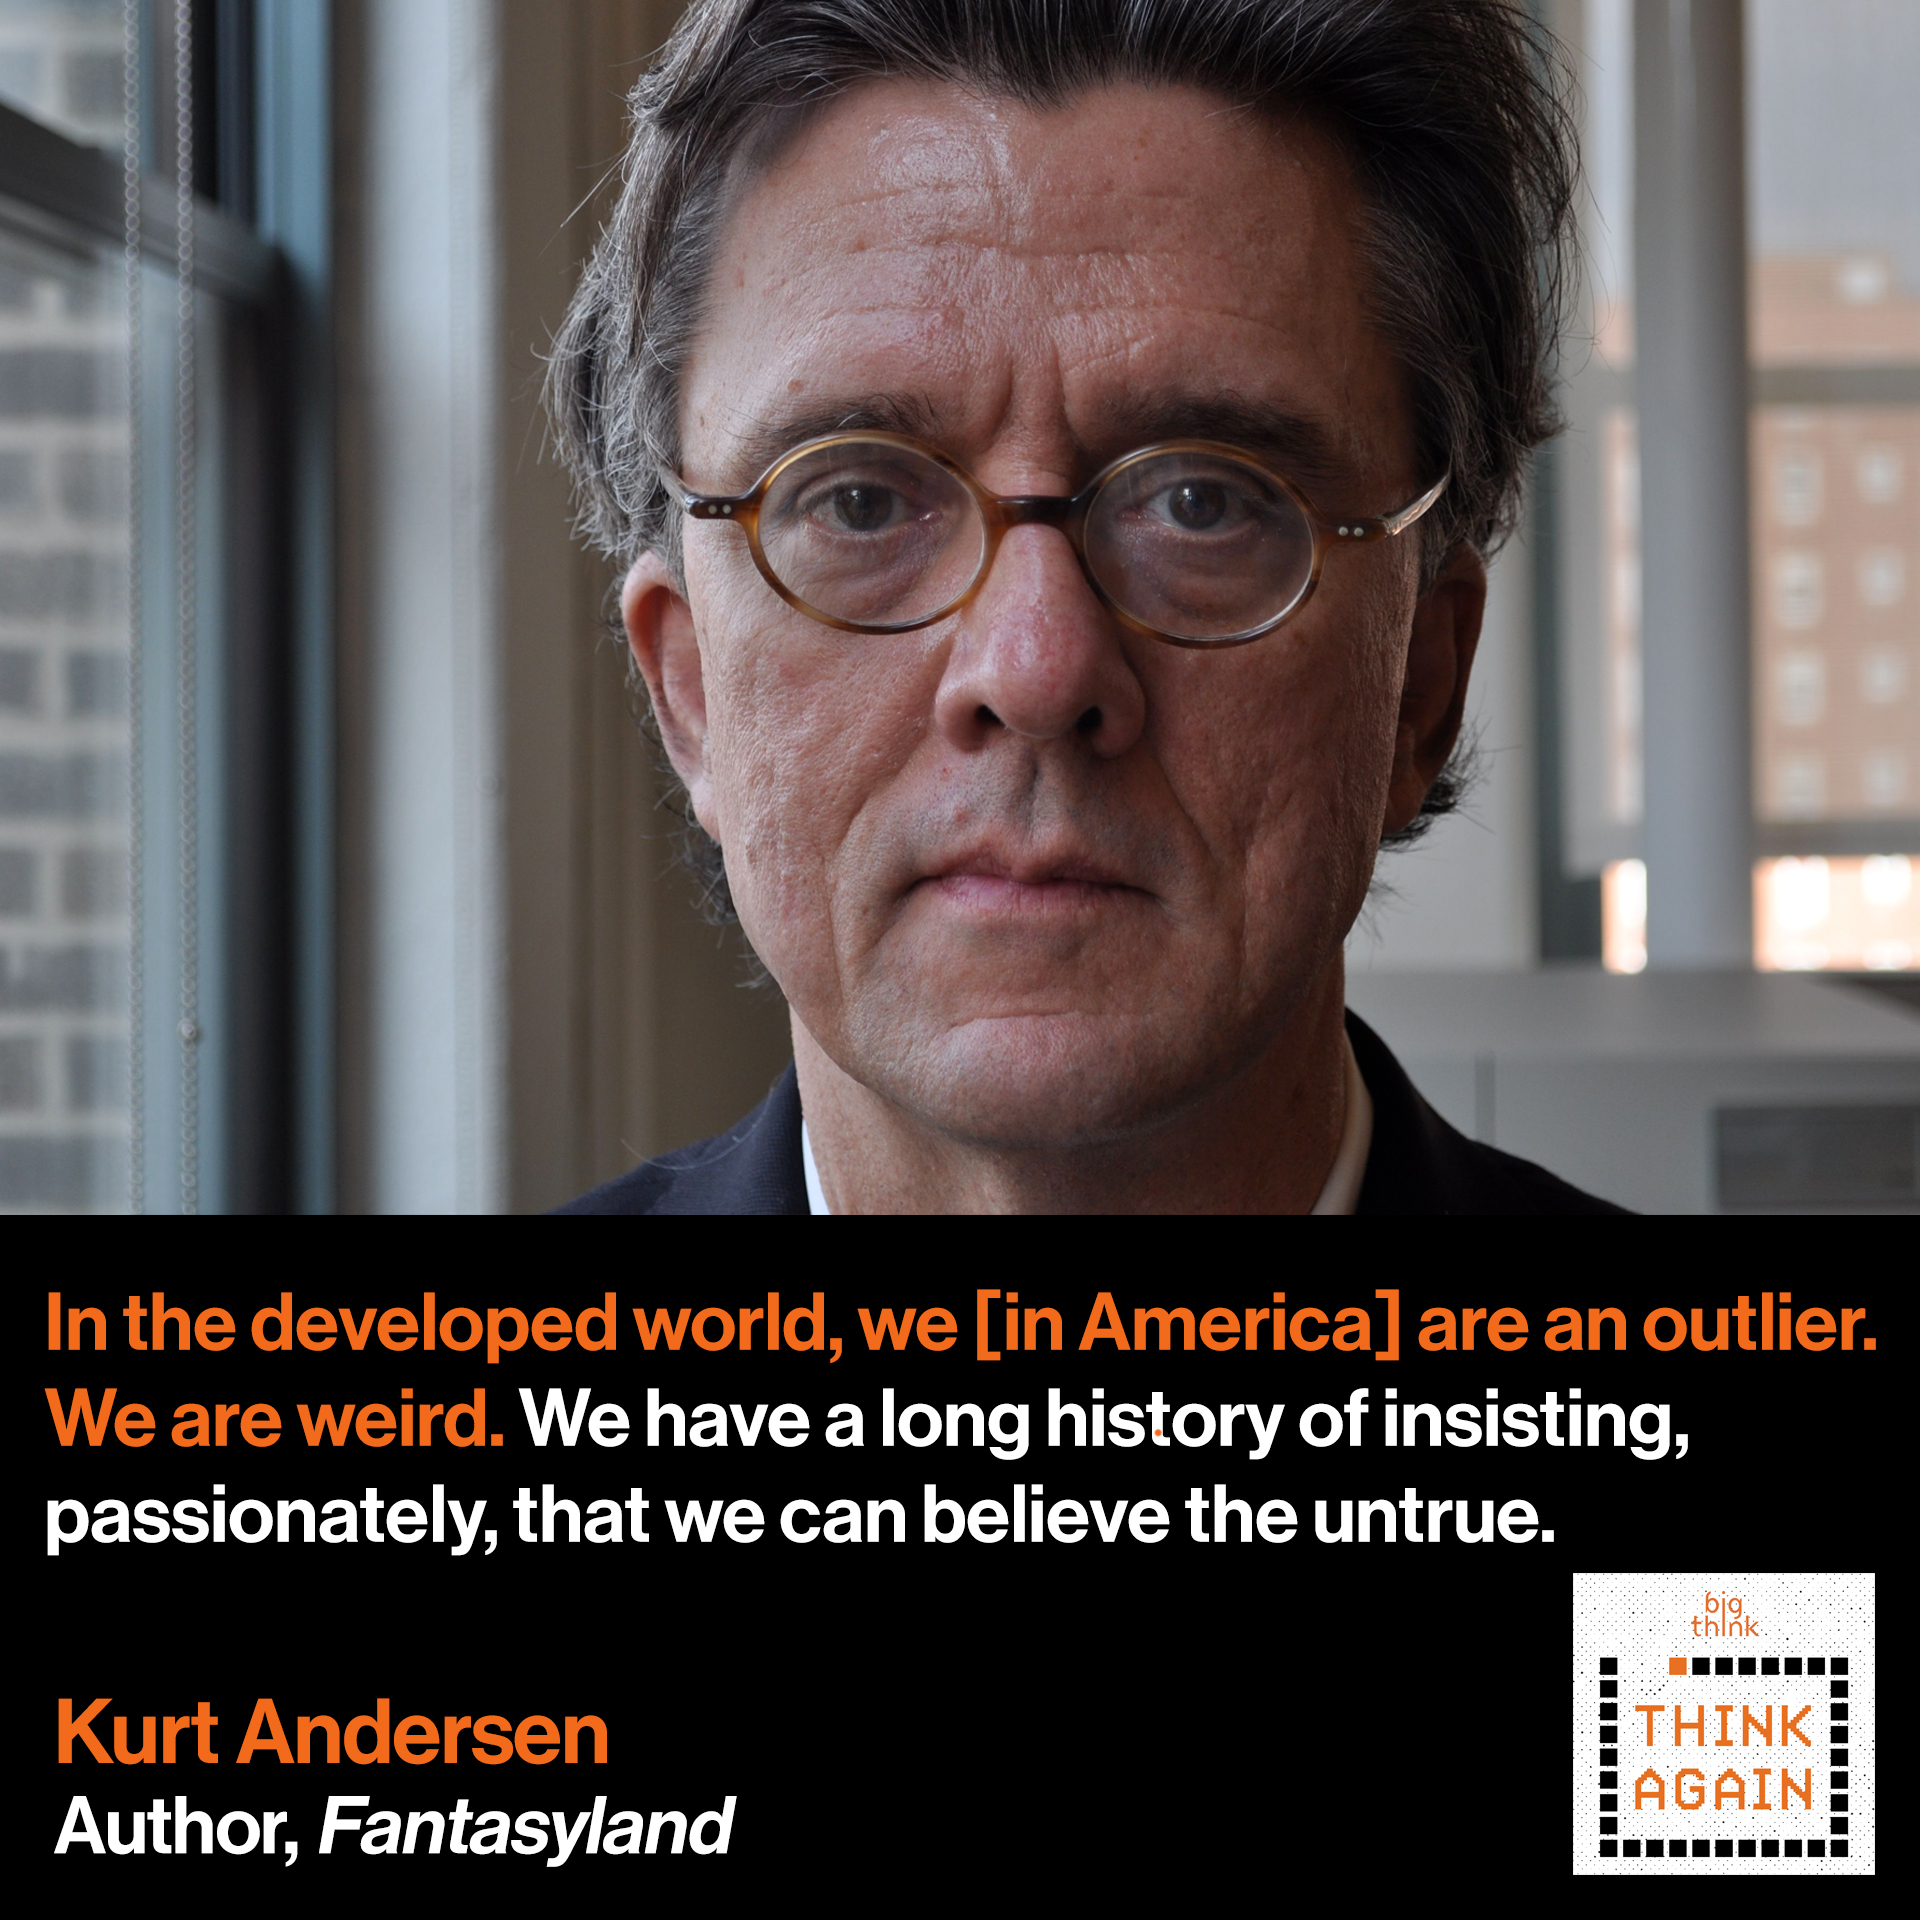 Kurt Andersen Quote: In the developed world, in the rich world,  we [in America] are an outlier. We are weird.  We have a long history of insisting, passionately,  that we can believe the untrue.